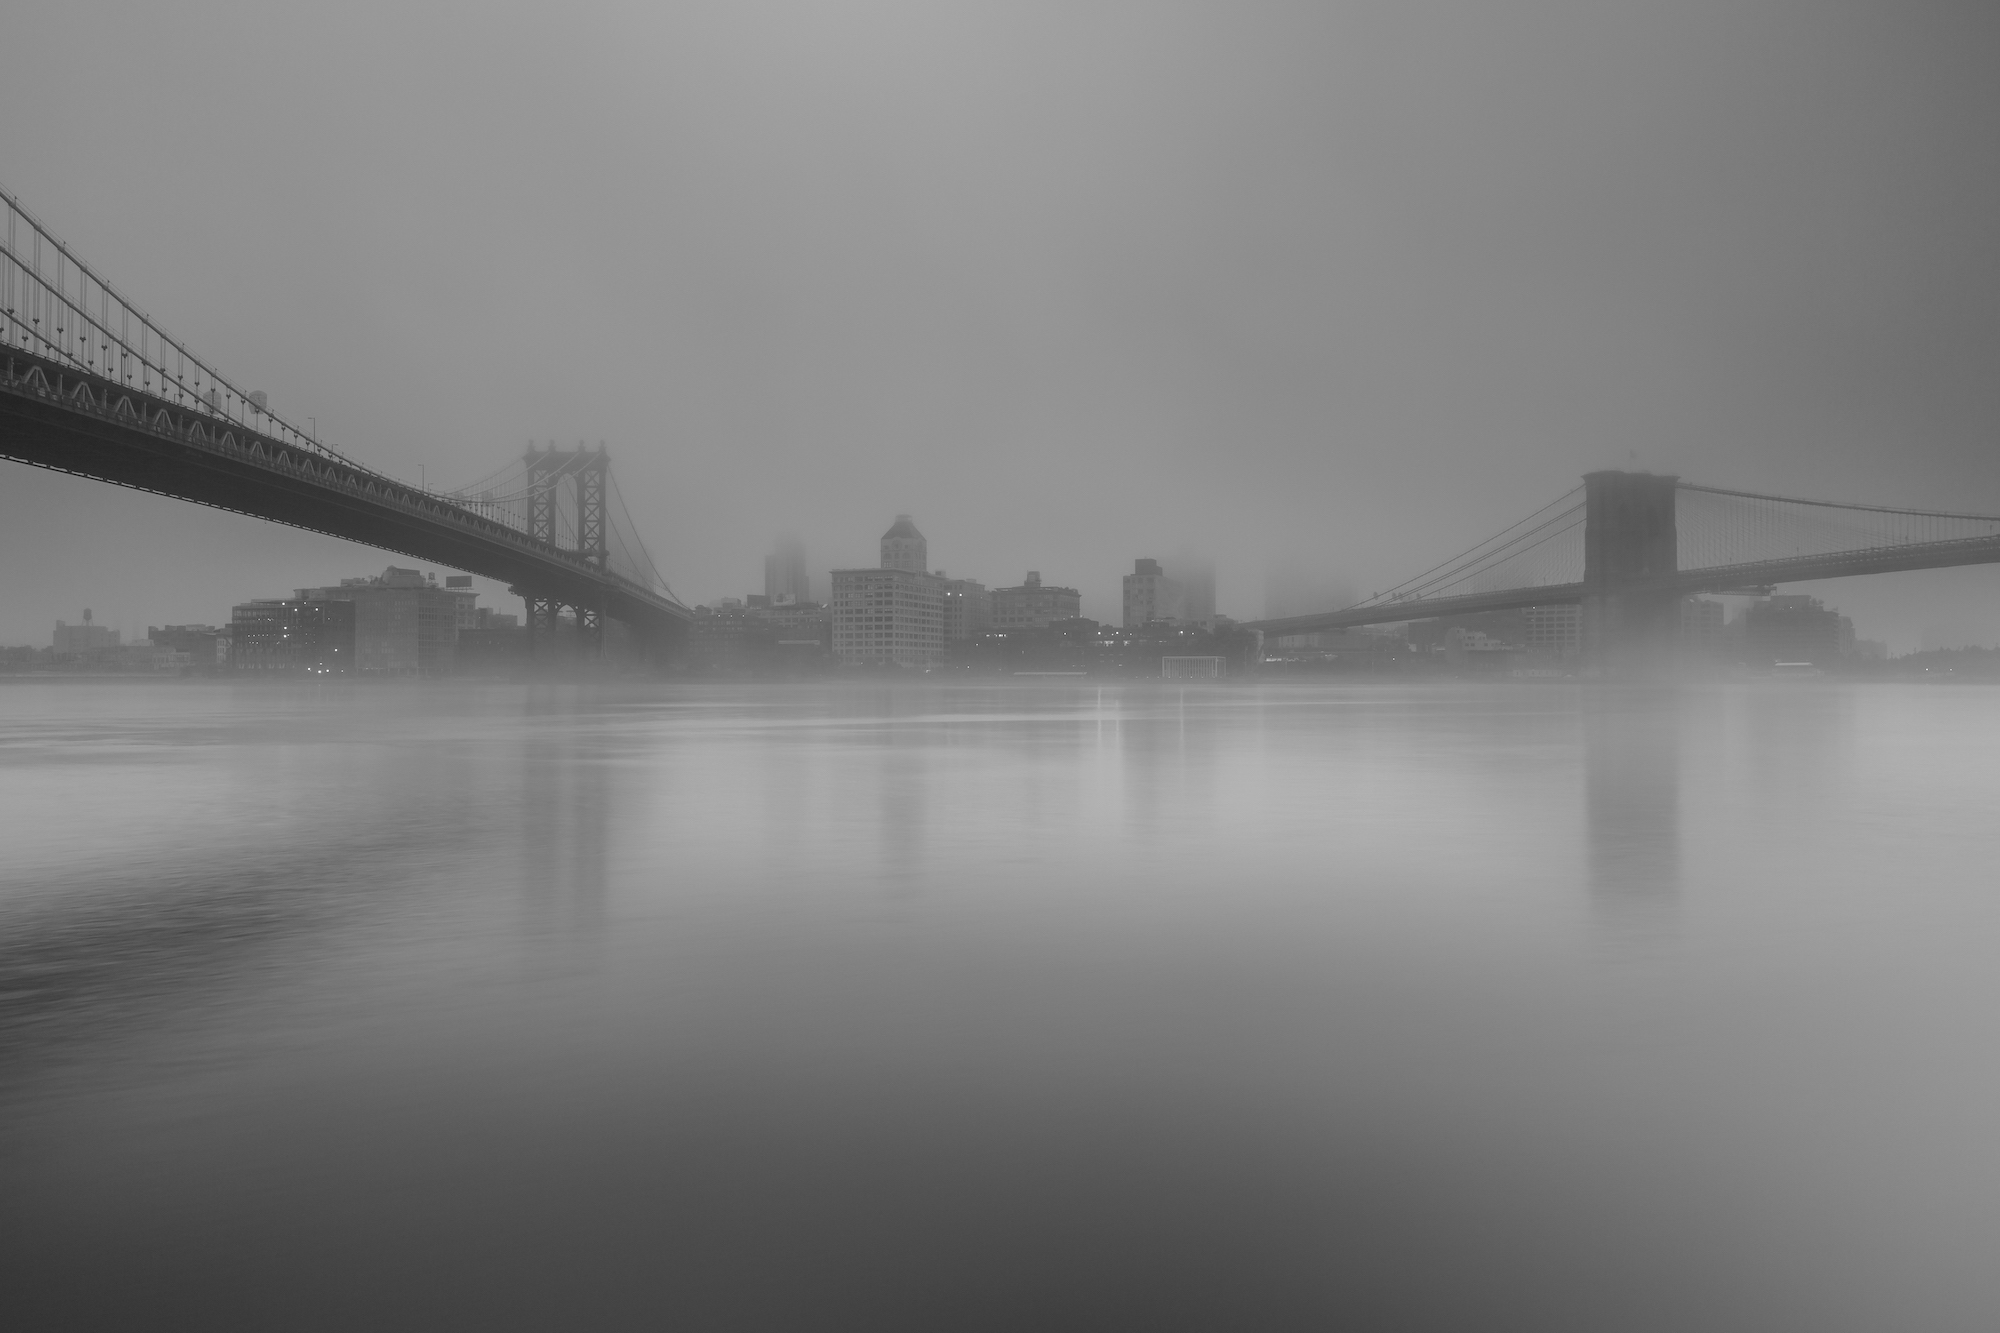 Dumbo view from east river on foggy morning example image 1